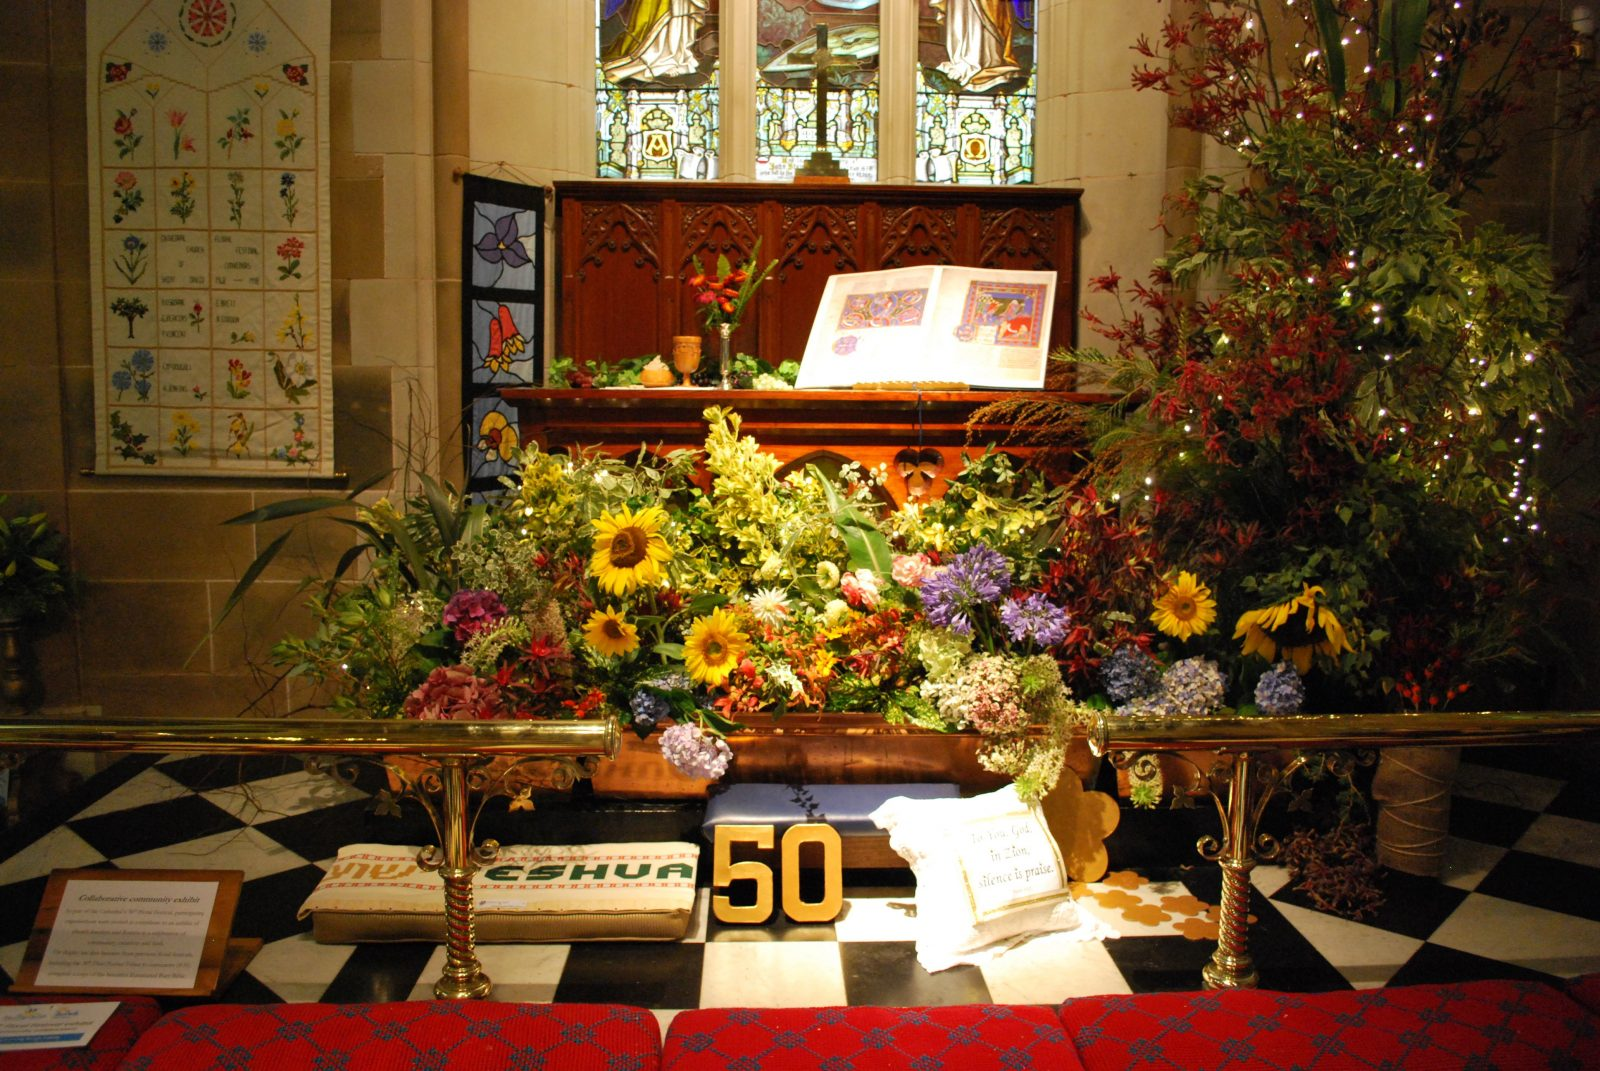 Community exhibit at the 50th floral festival in 2018